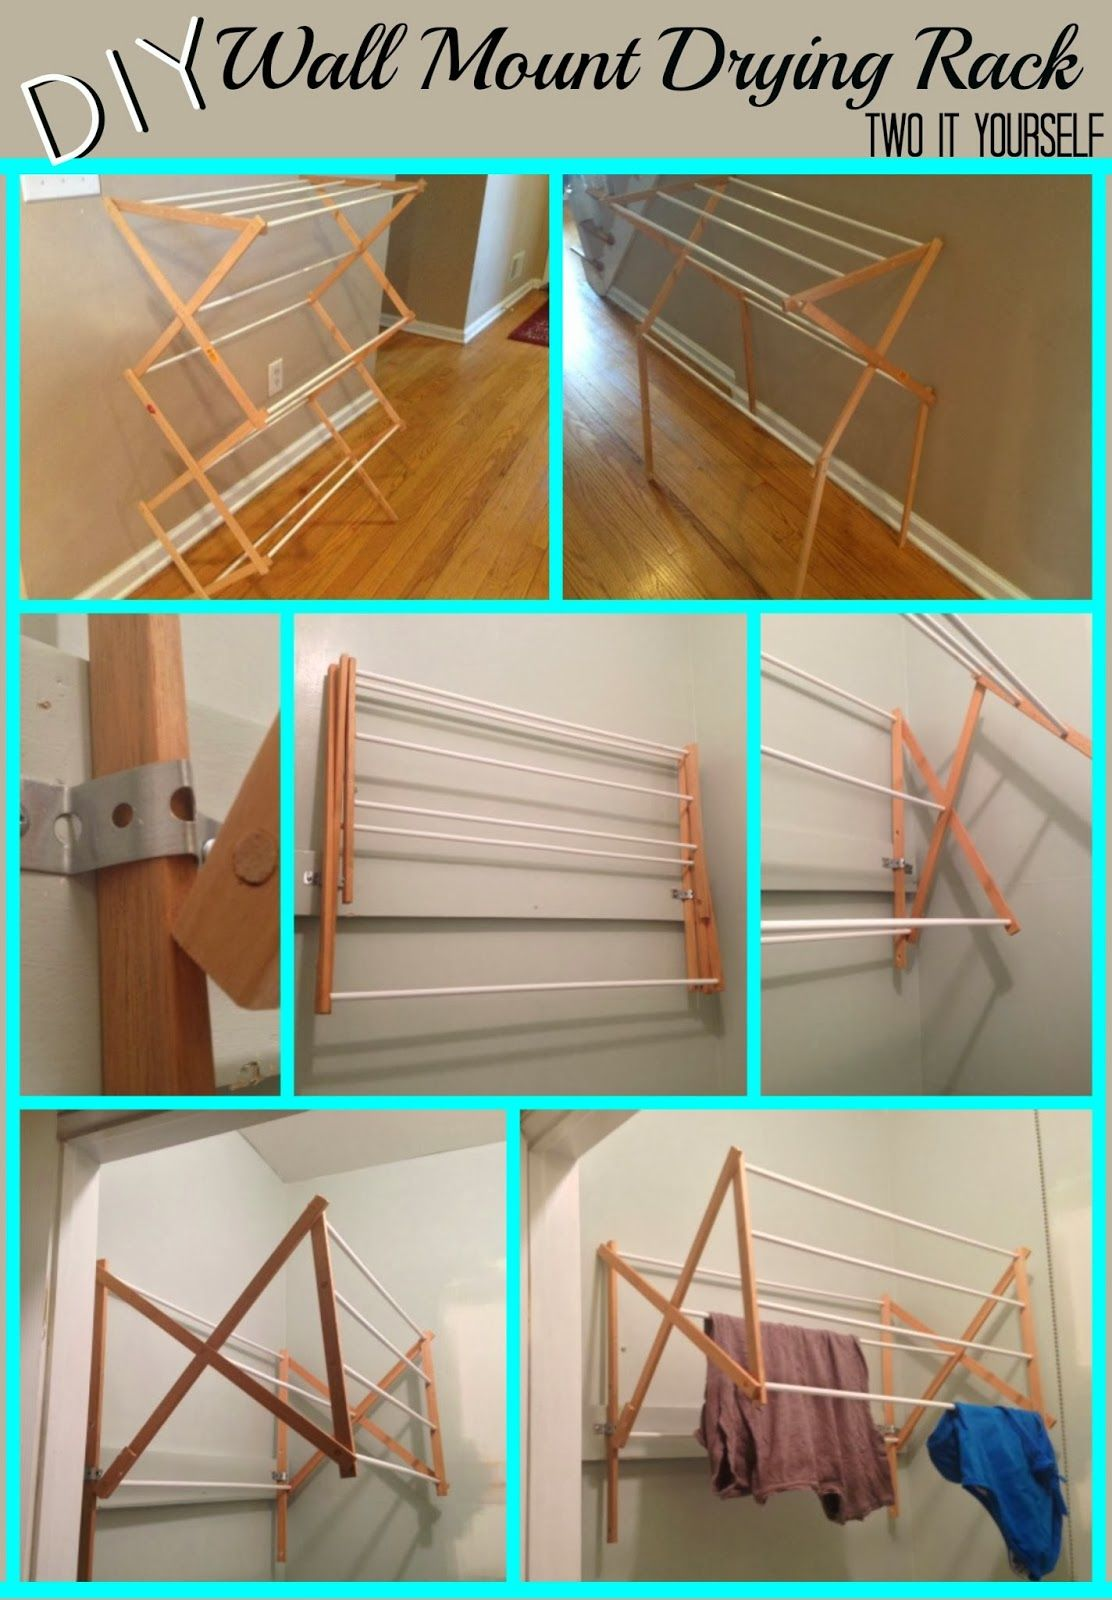 Two It Yourself DIY Laundry Drying Rack (Wall Mount from